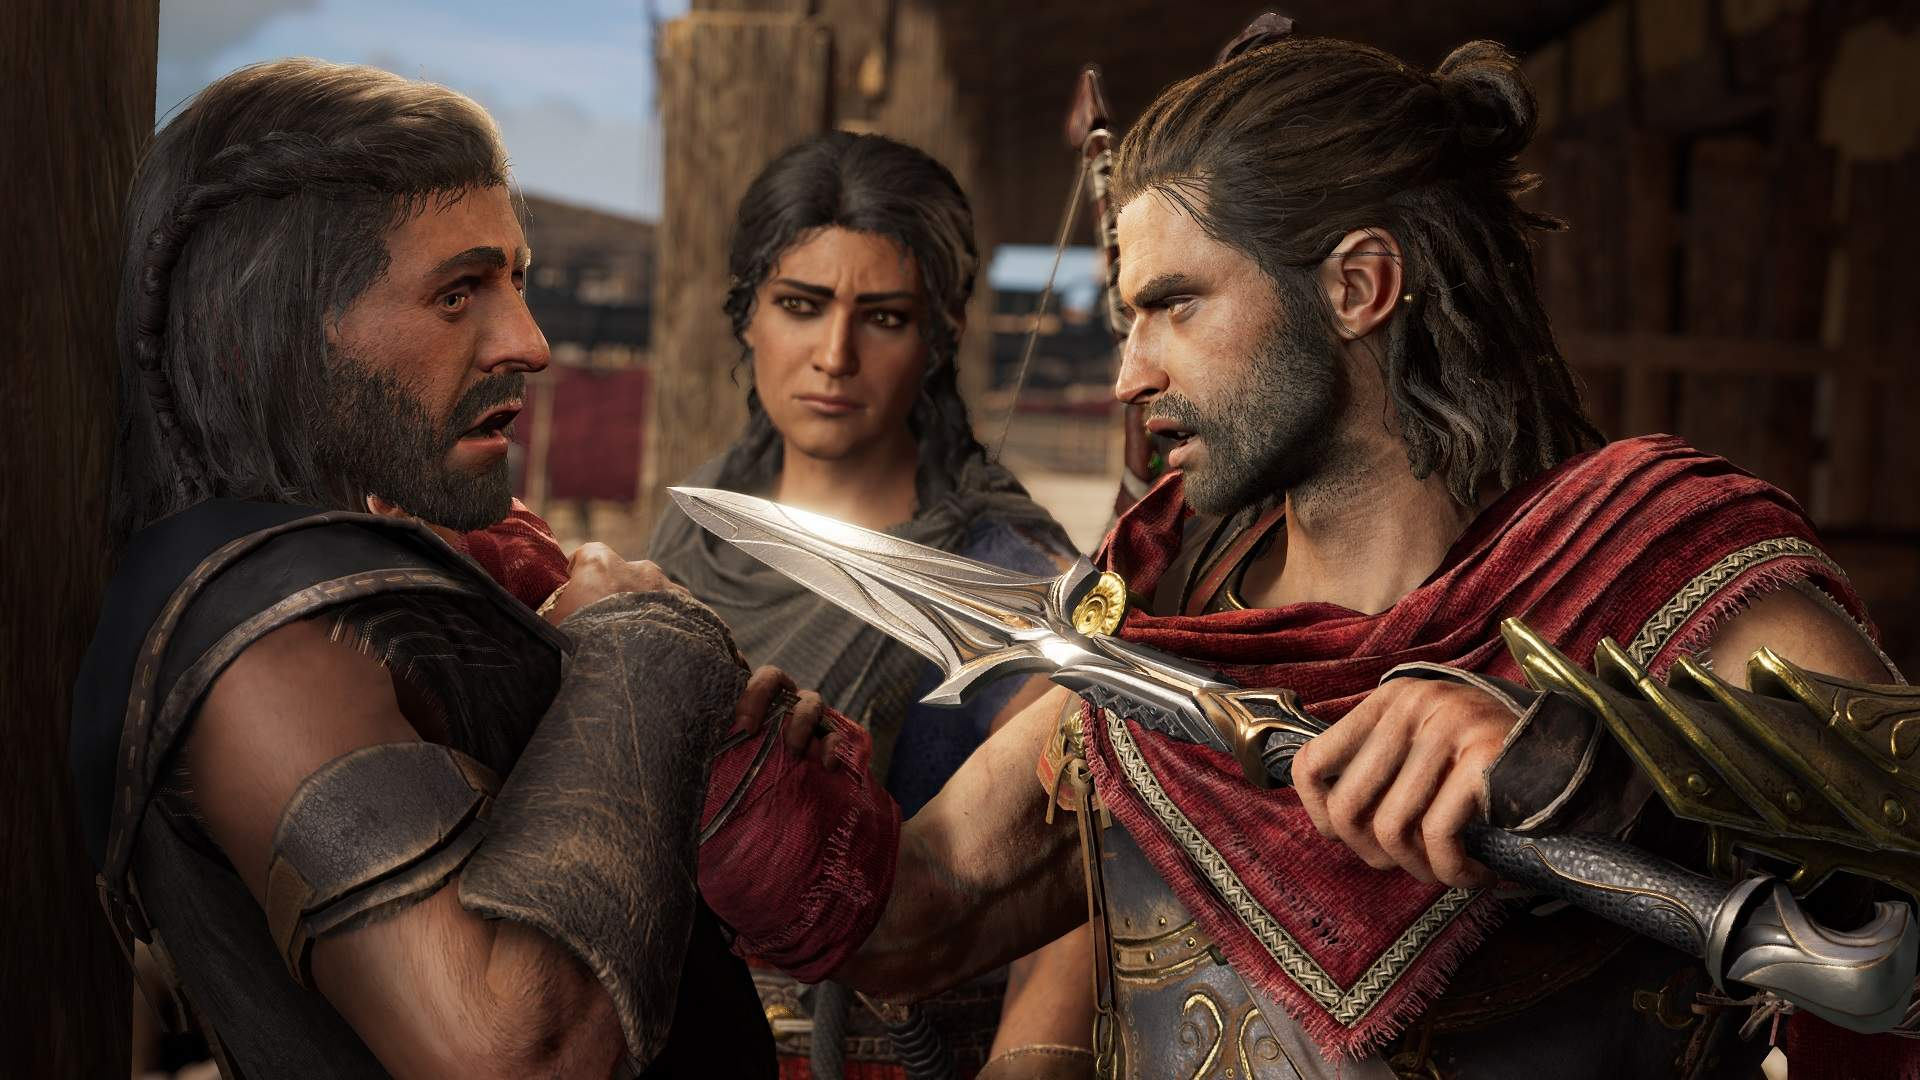 After wave of abuse allegations, Ubisoft CEO says change is coming despite minimal changes so far